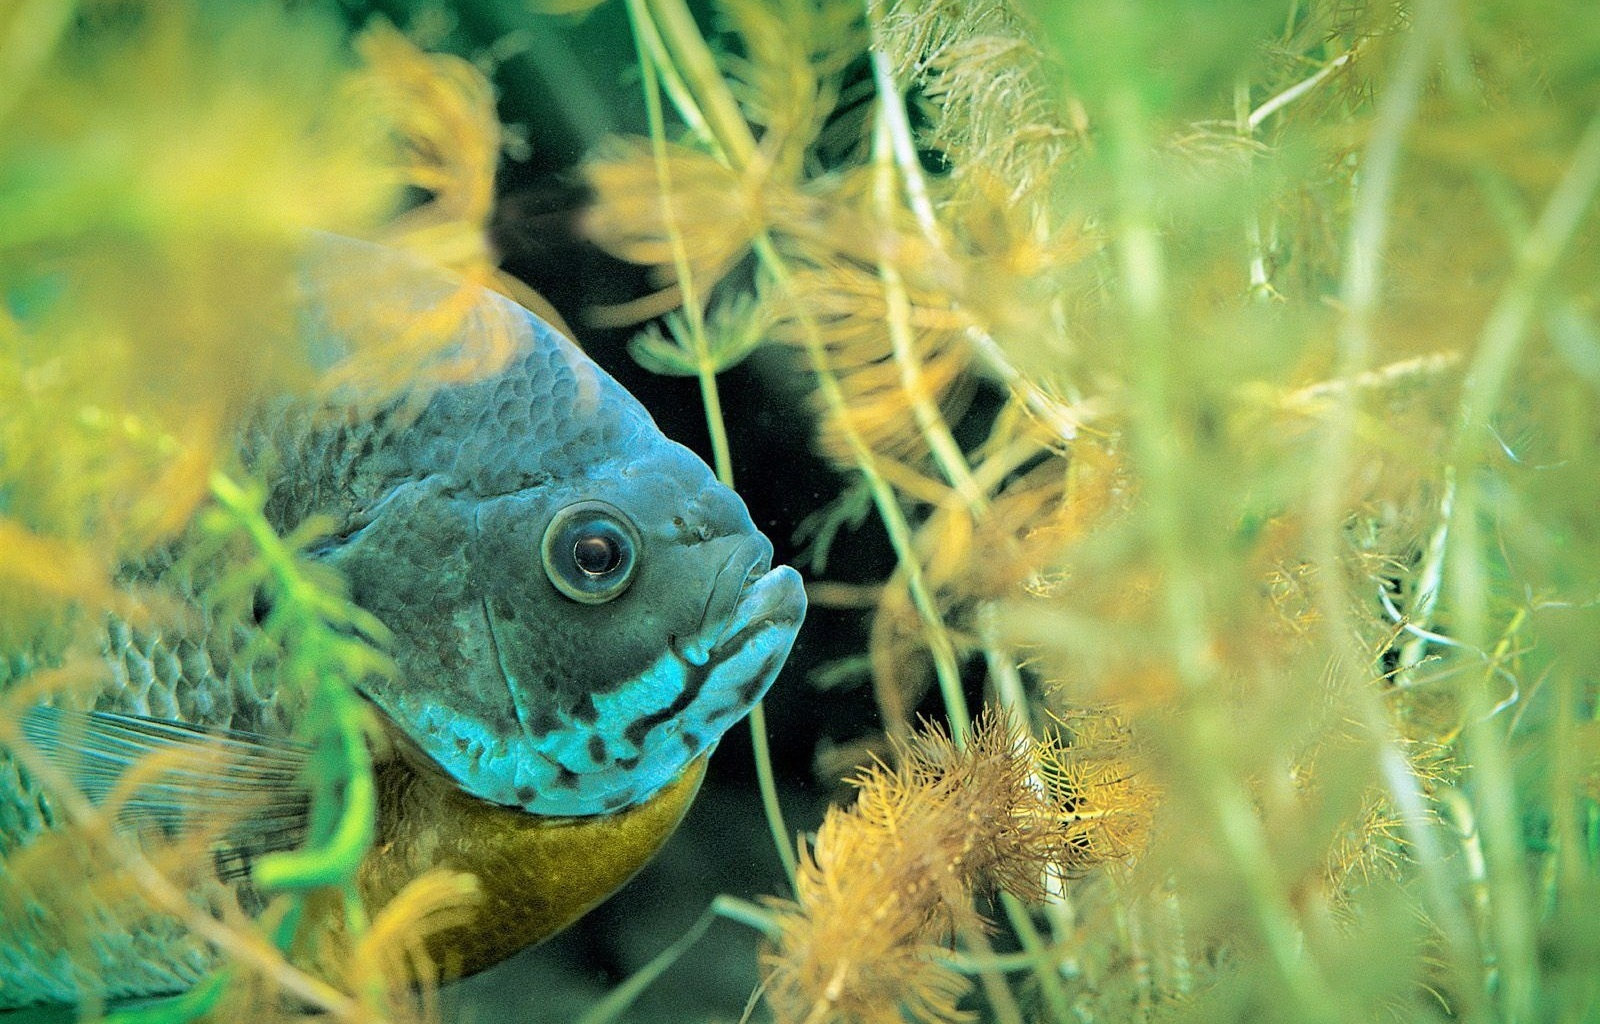 28662 download wallpaper Animals, Aquariums, Fishes screensavers and pictures for free